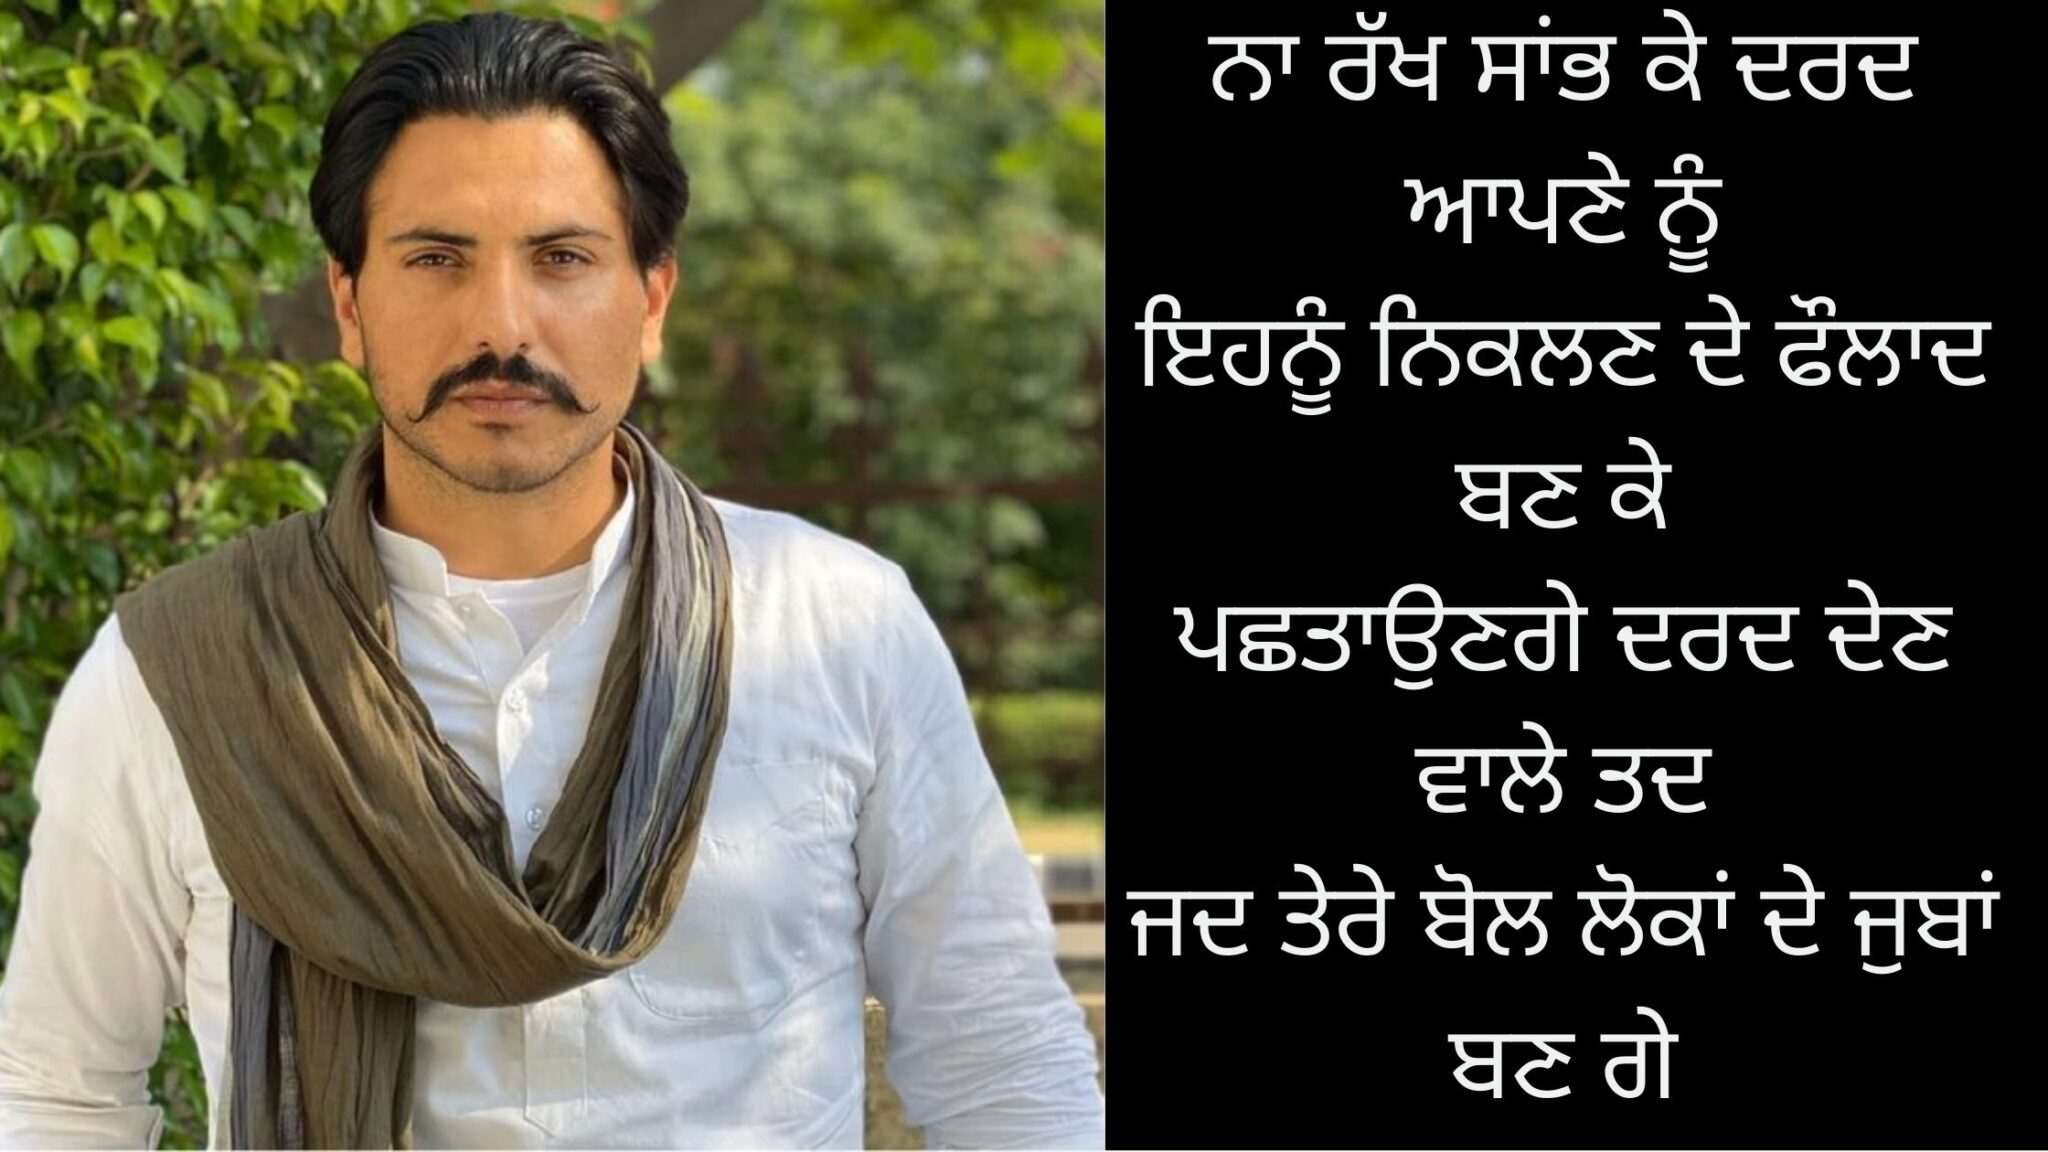 Punjabi Motivational Shayari